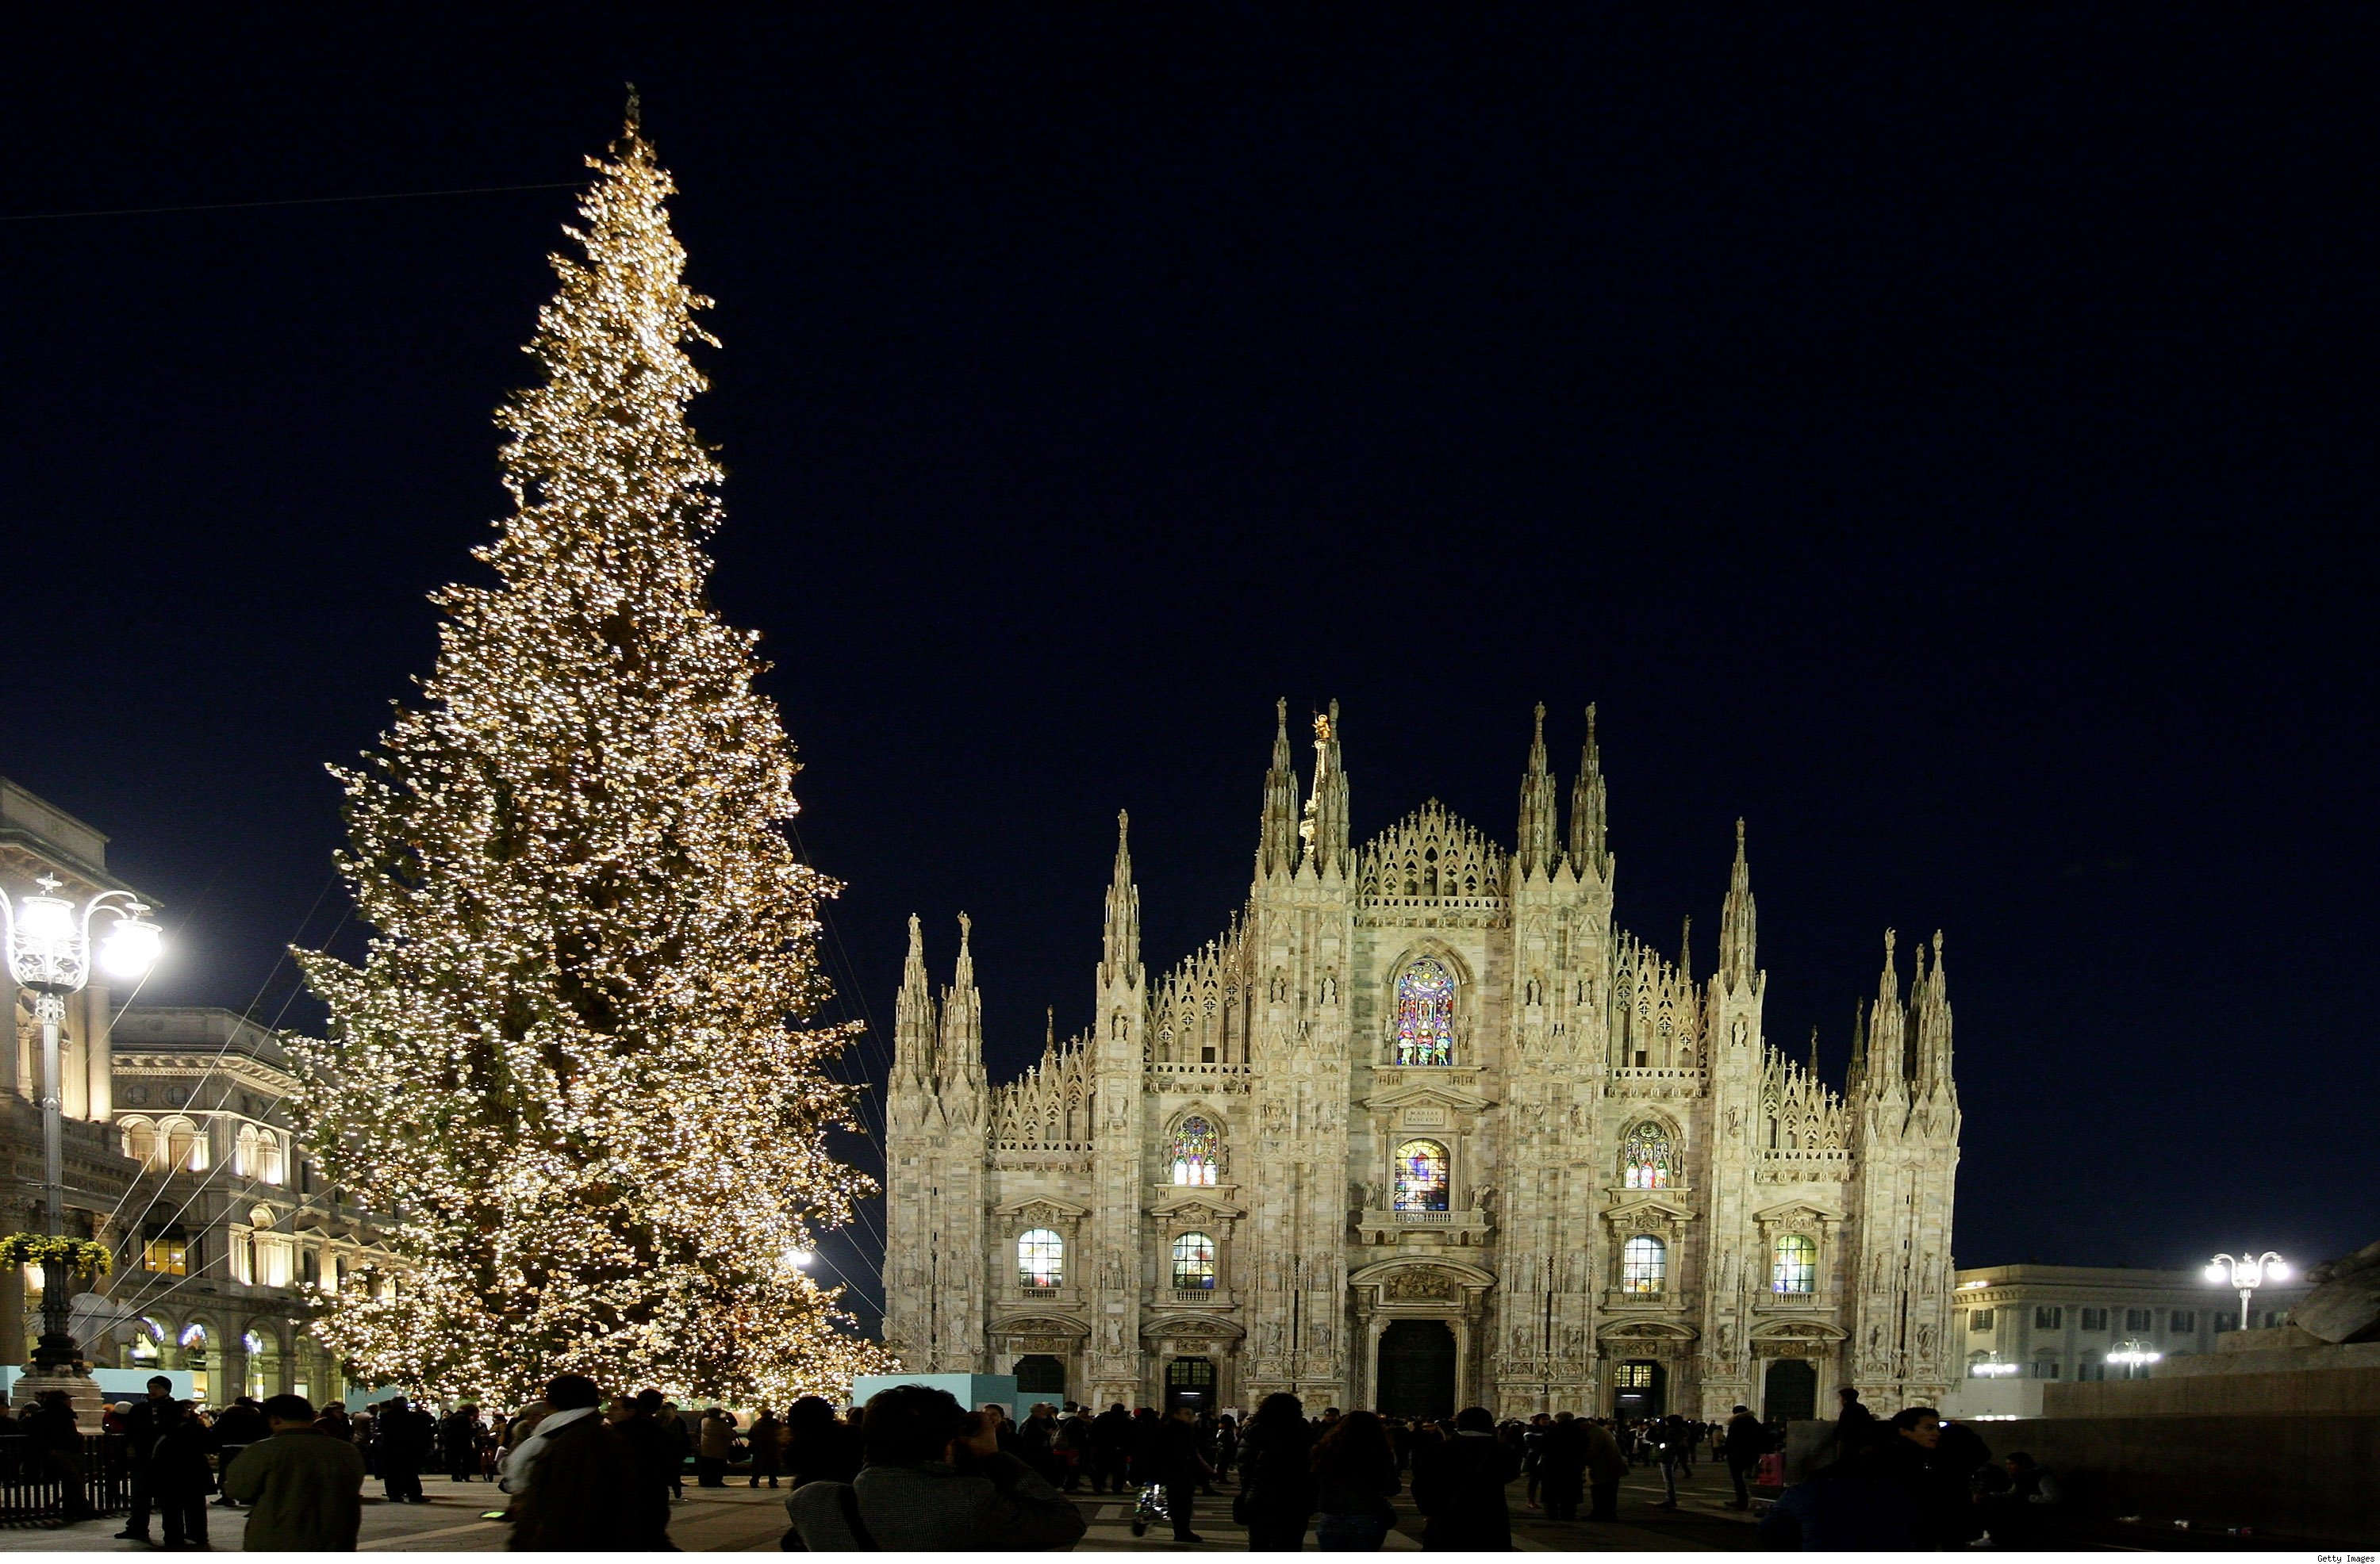 Christmas Tree at Plazza Del Duomo in Milan, Italy